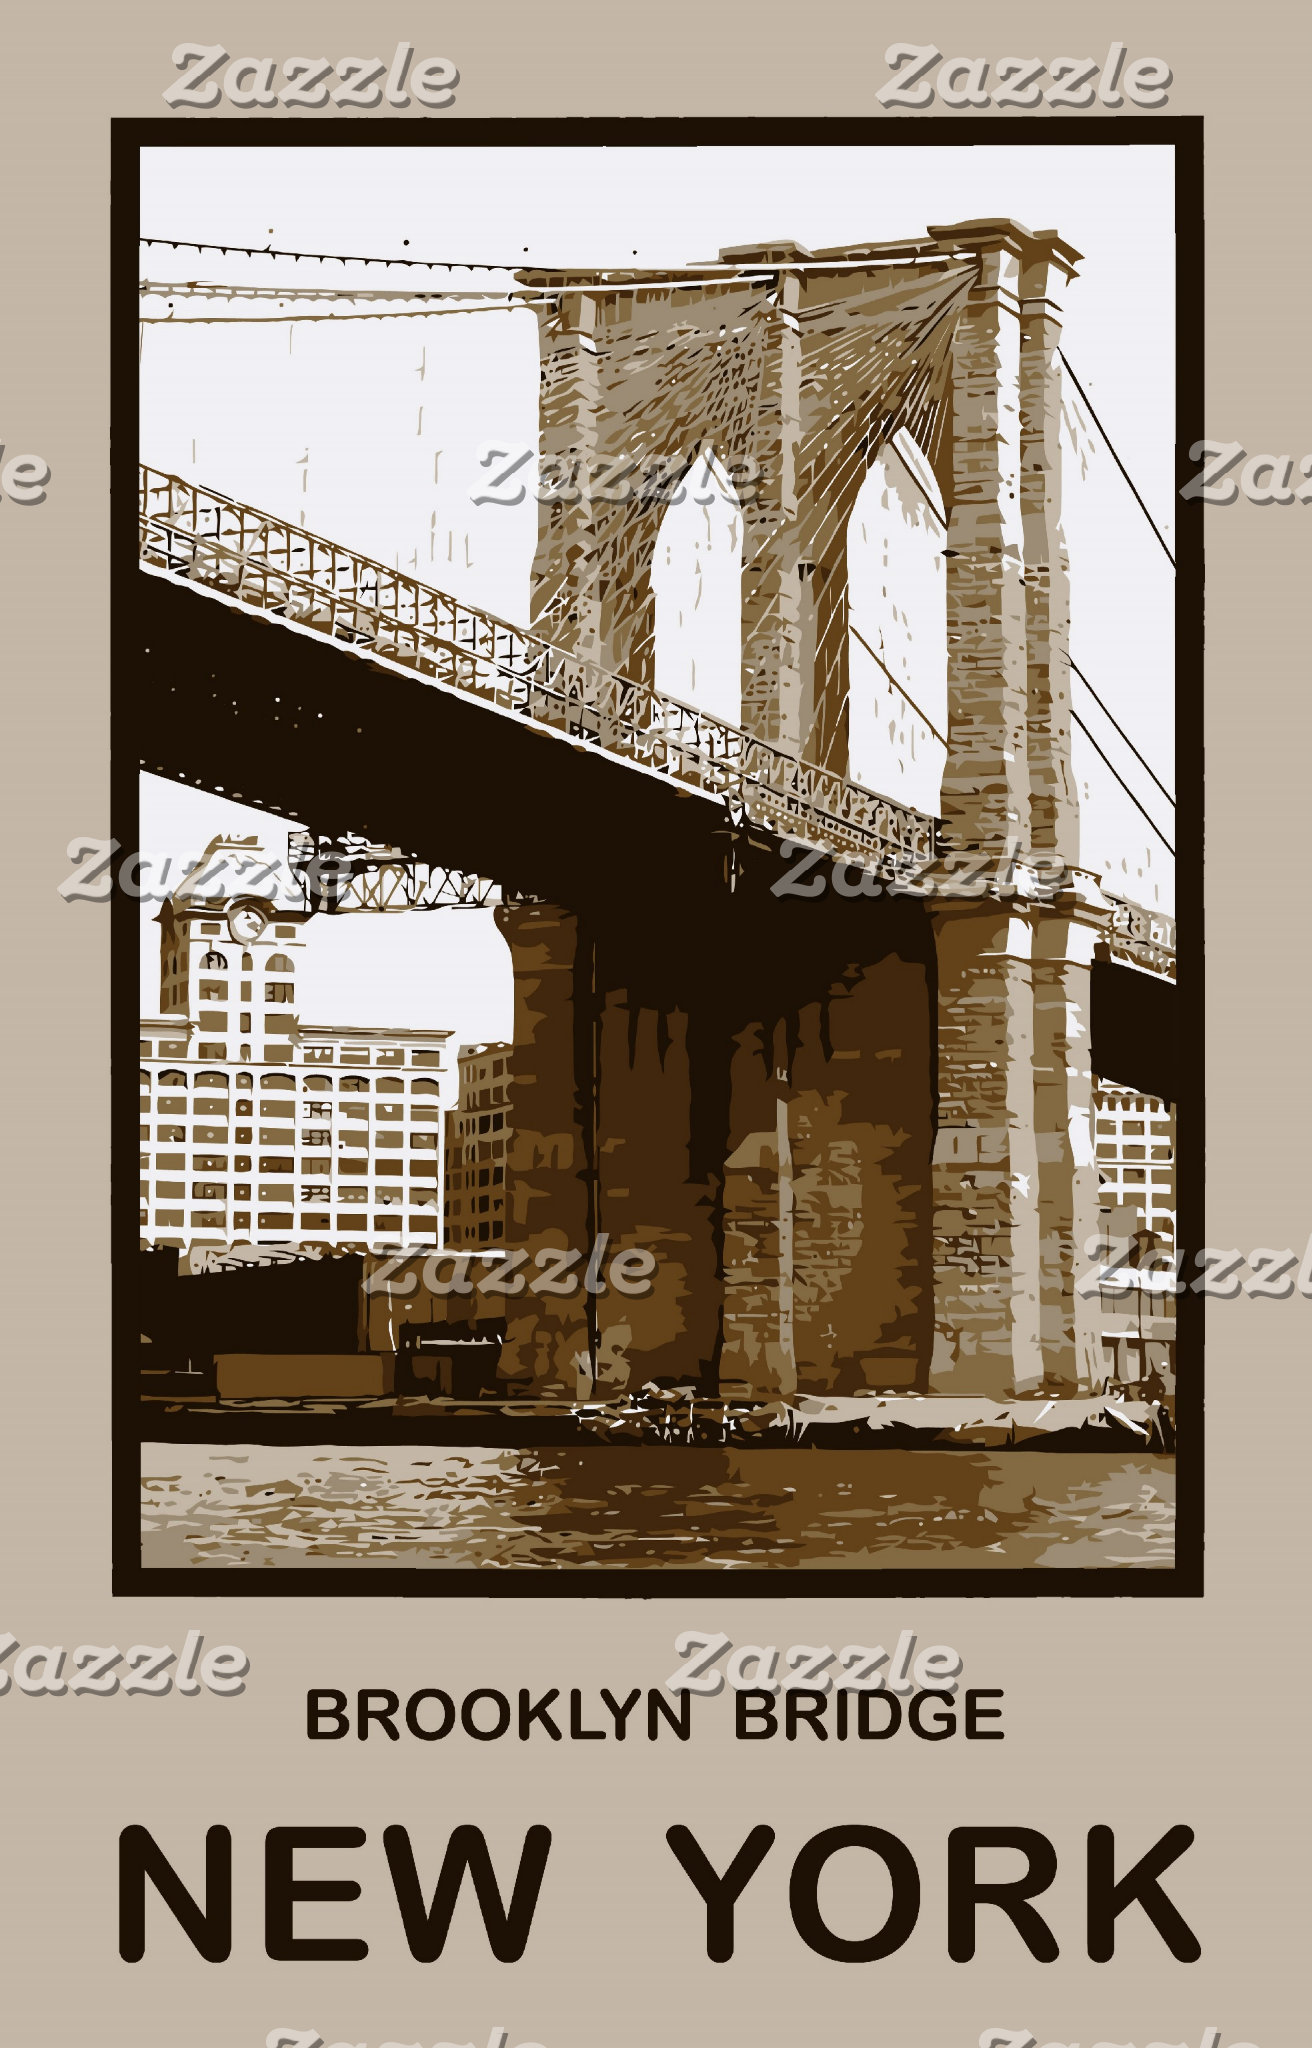 Brooklyn Bridge New York